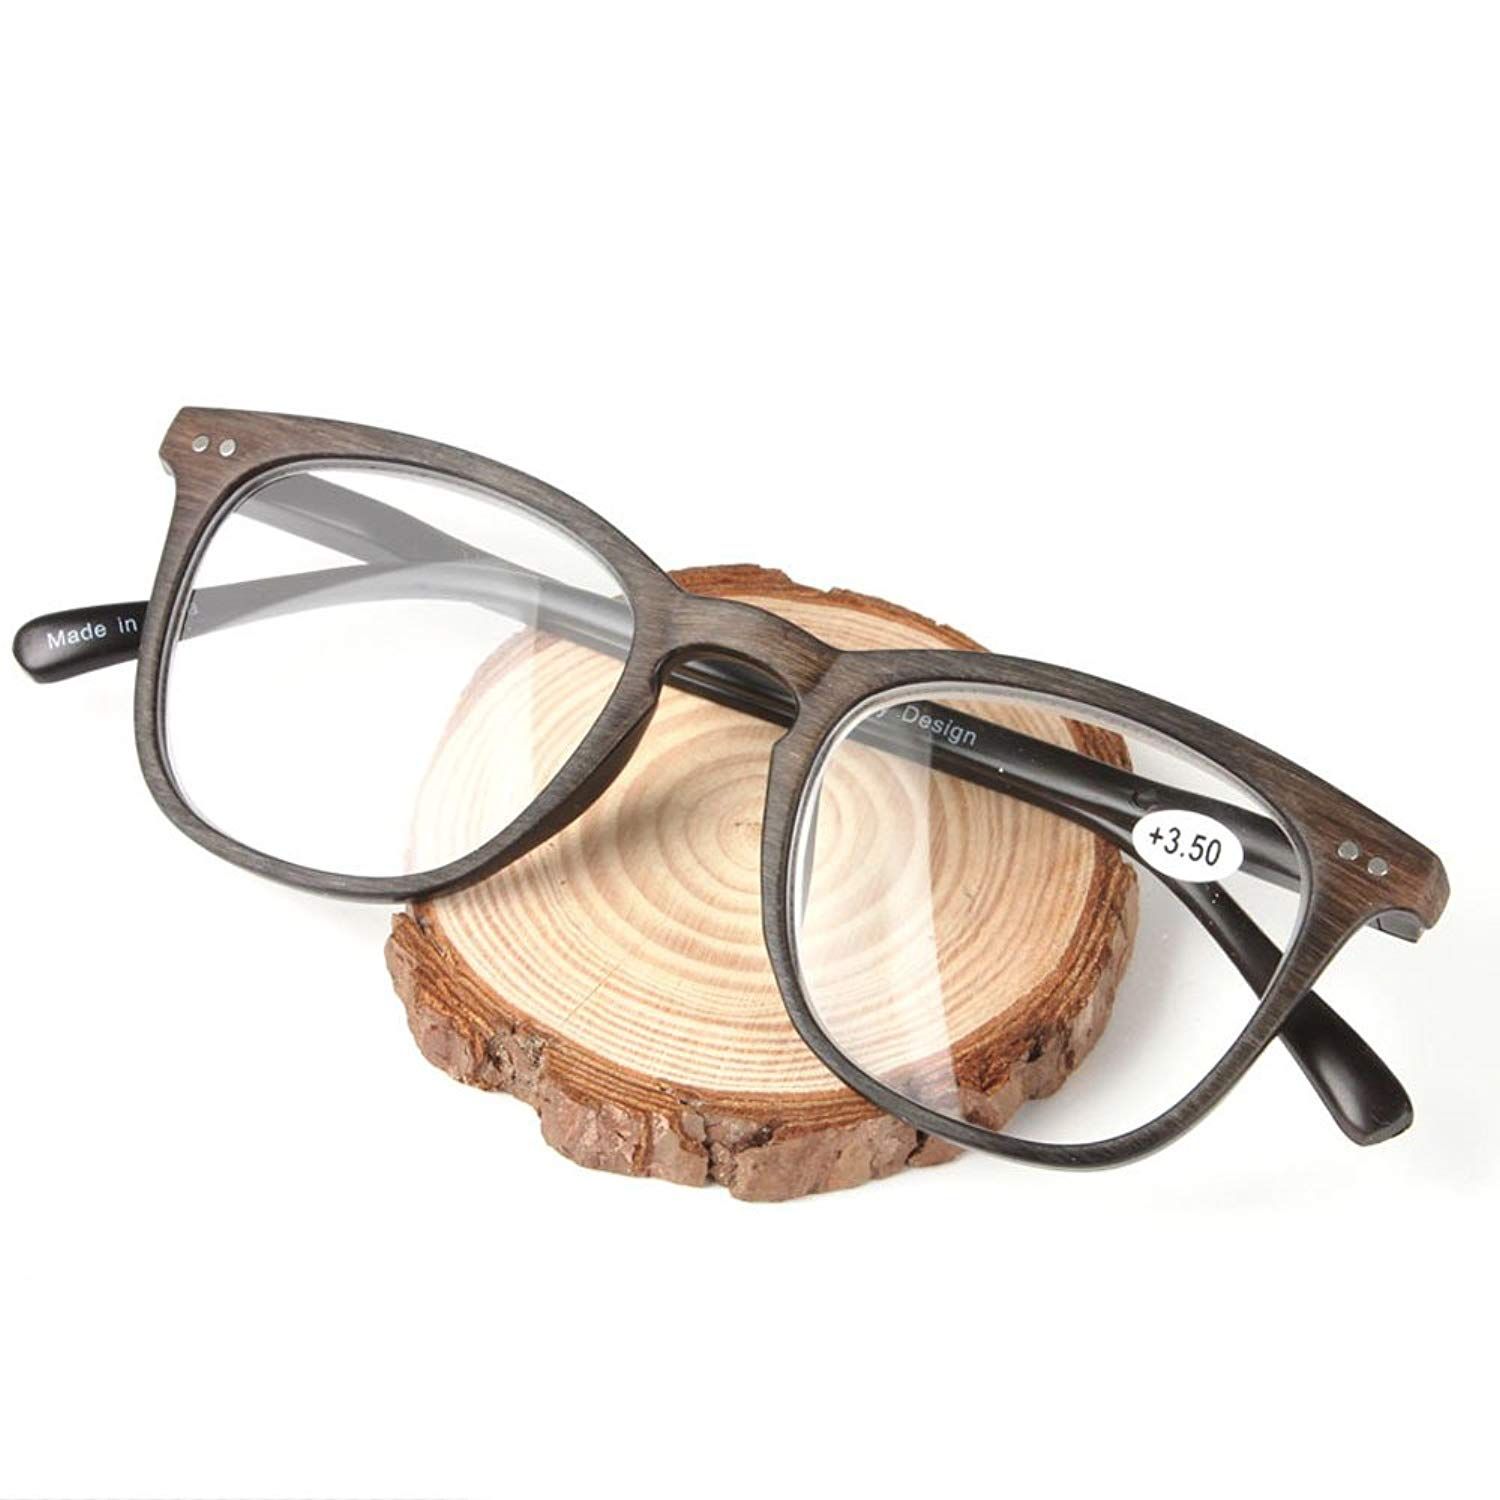 3b5c9984cc1 Get Quotations · Wood Grain Reading Glasses Men Women 2017 Vintage Resin  Lens Points for Male Reader +1.0